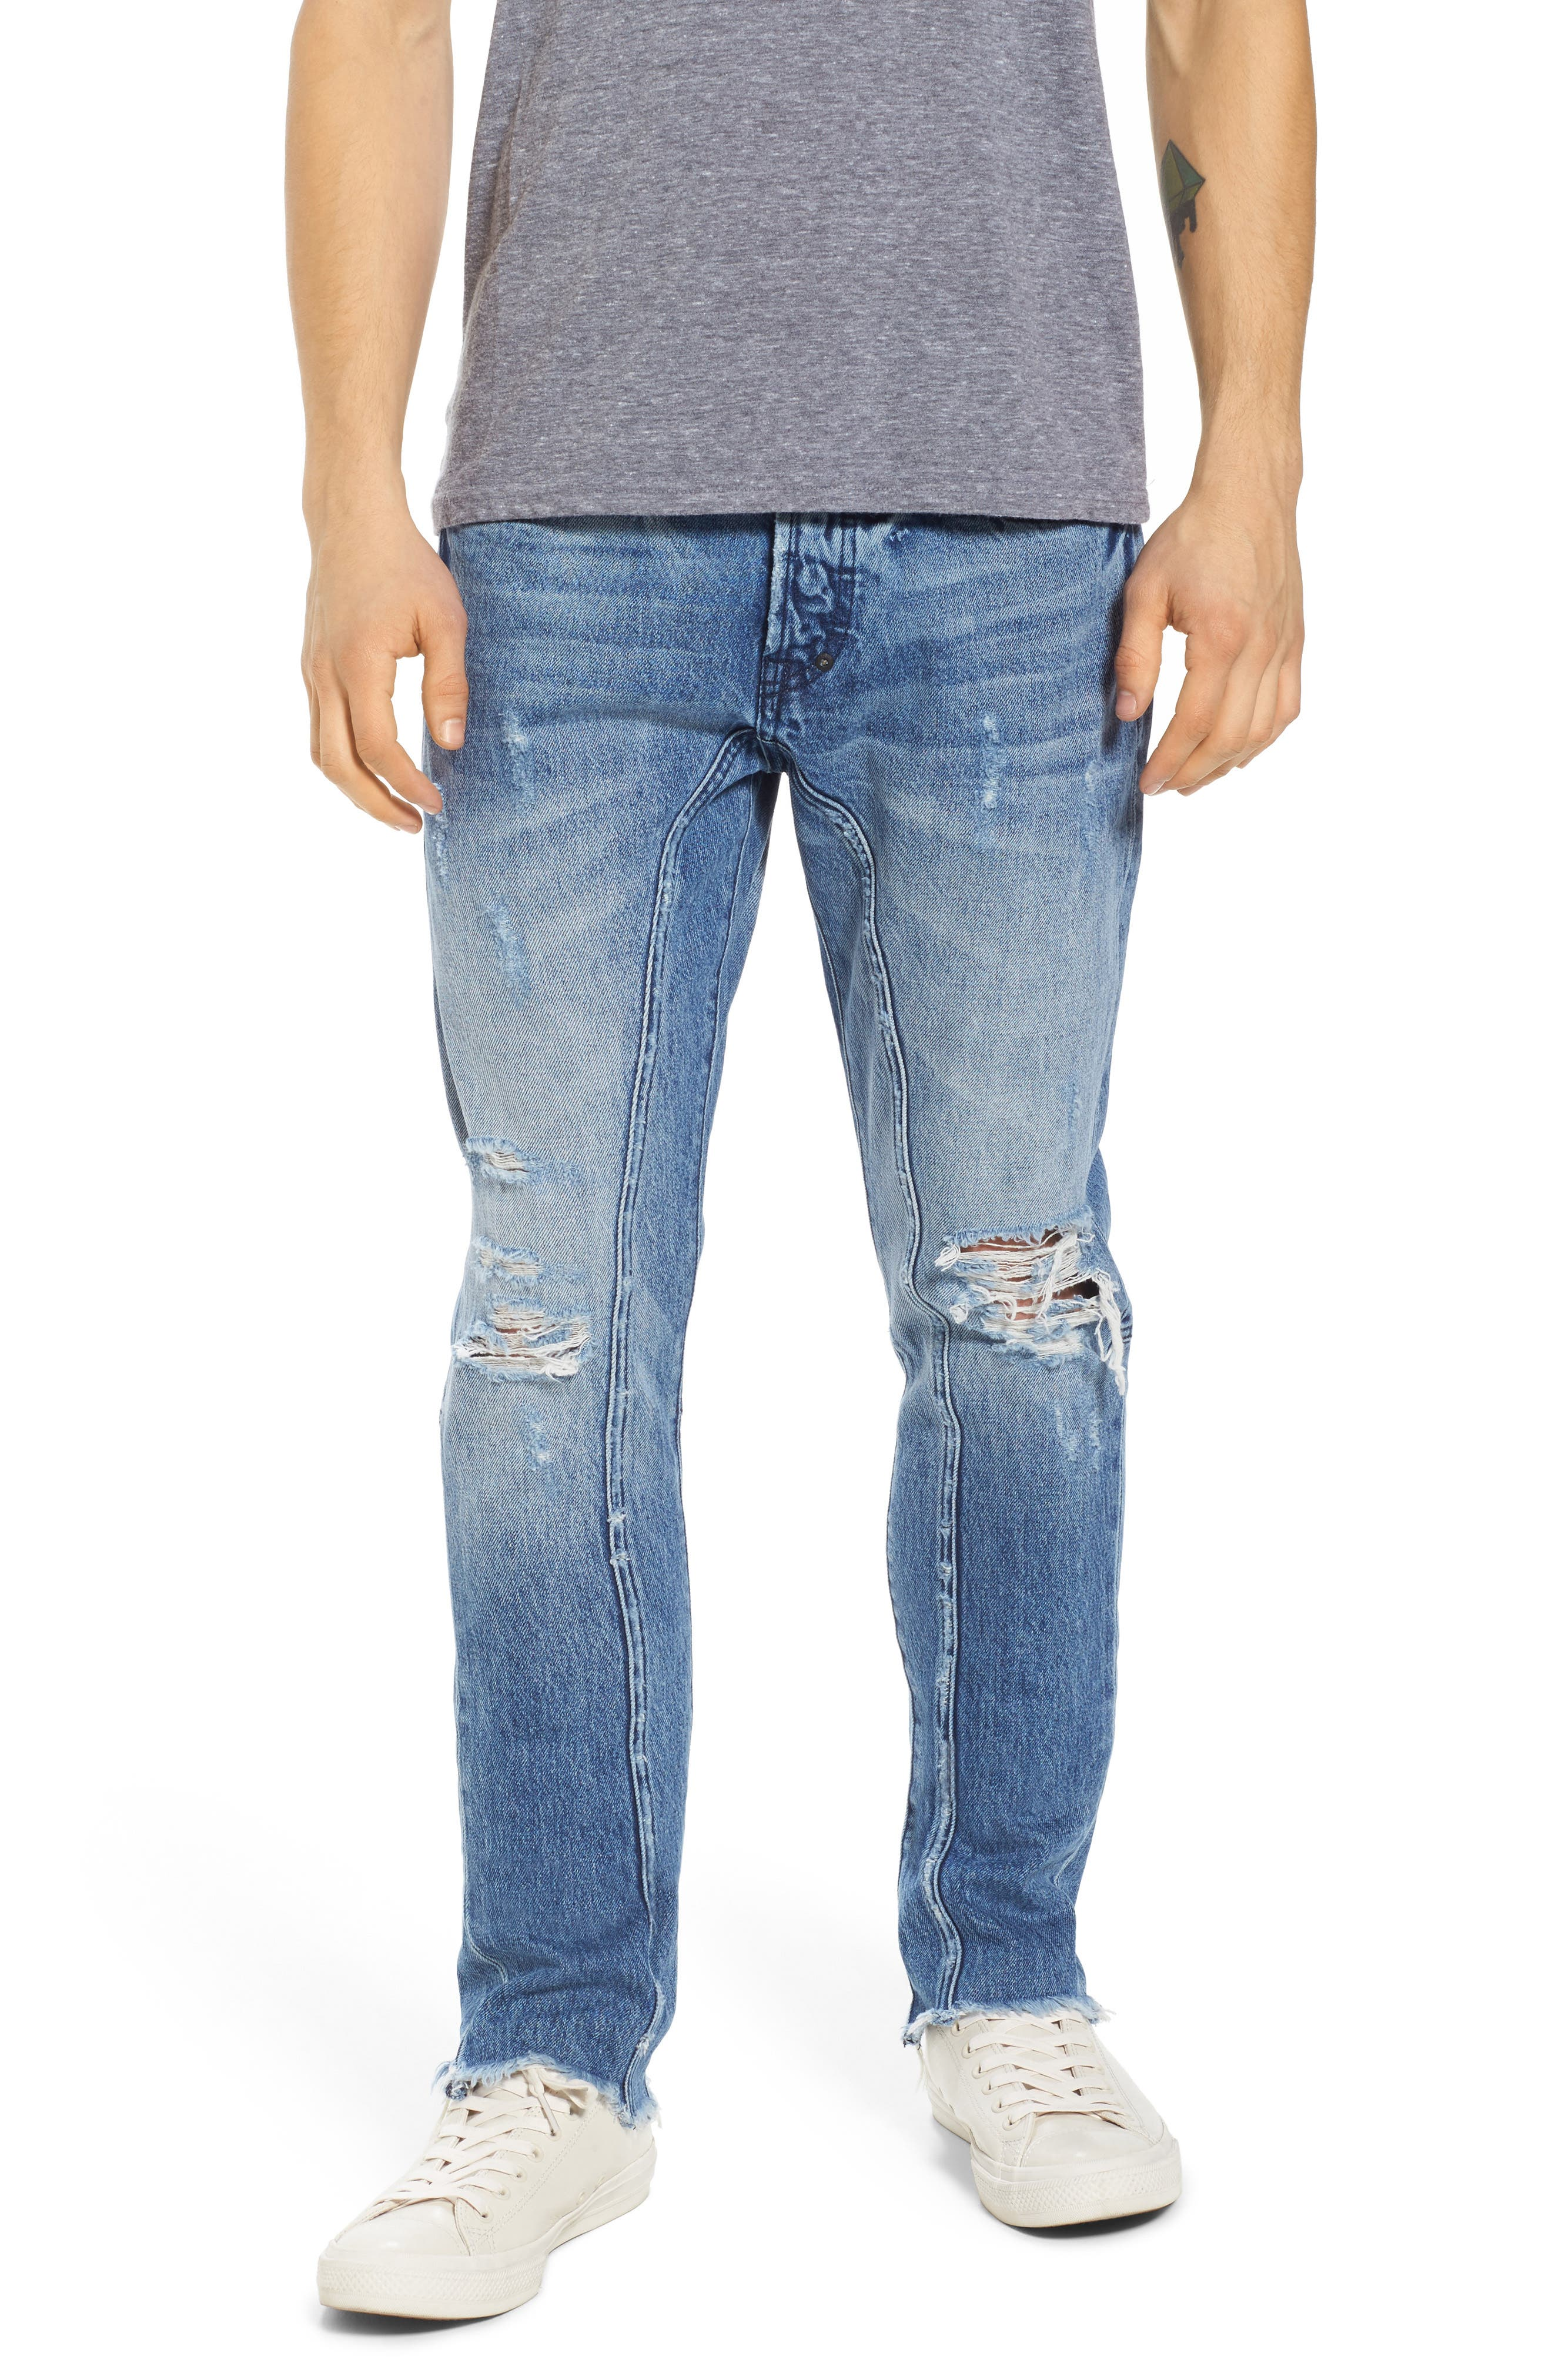 Le Sabre Tapered Fit Jeans,                         Main,                         color, 490